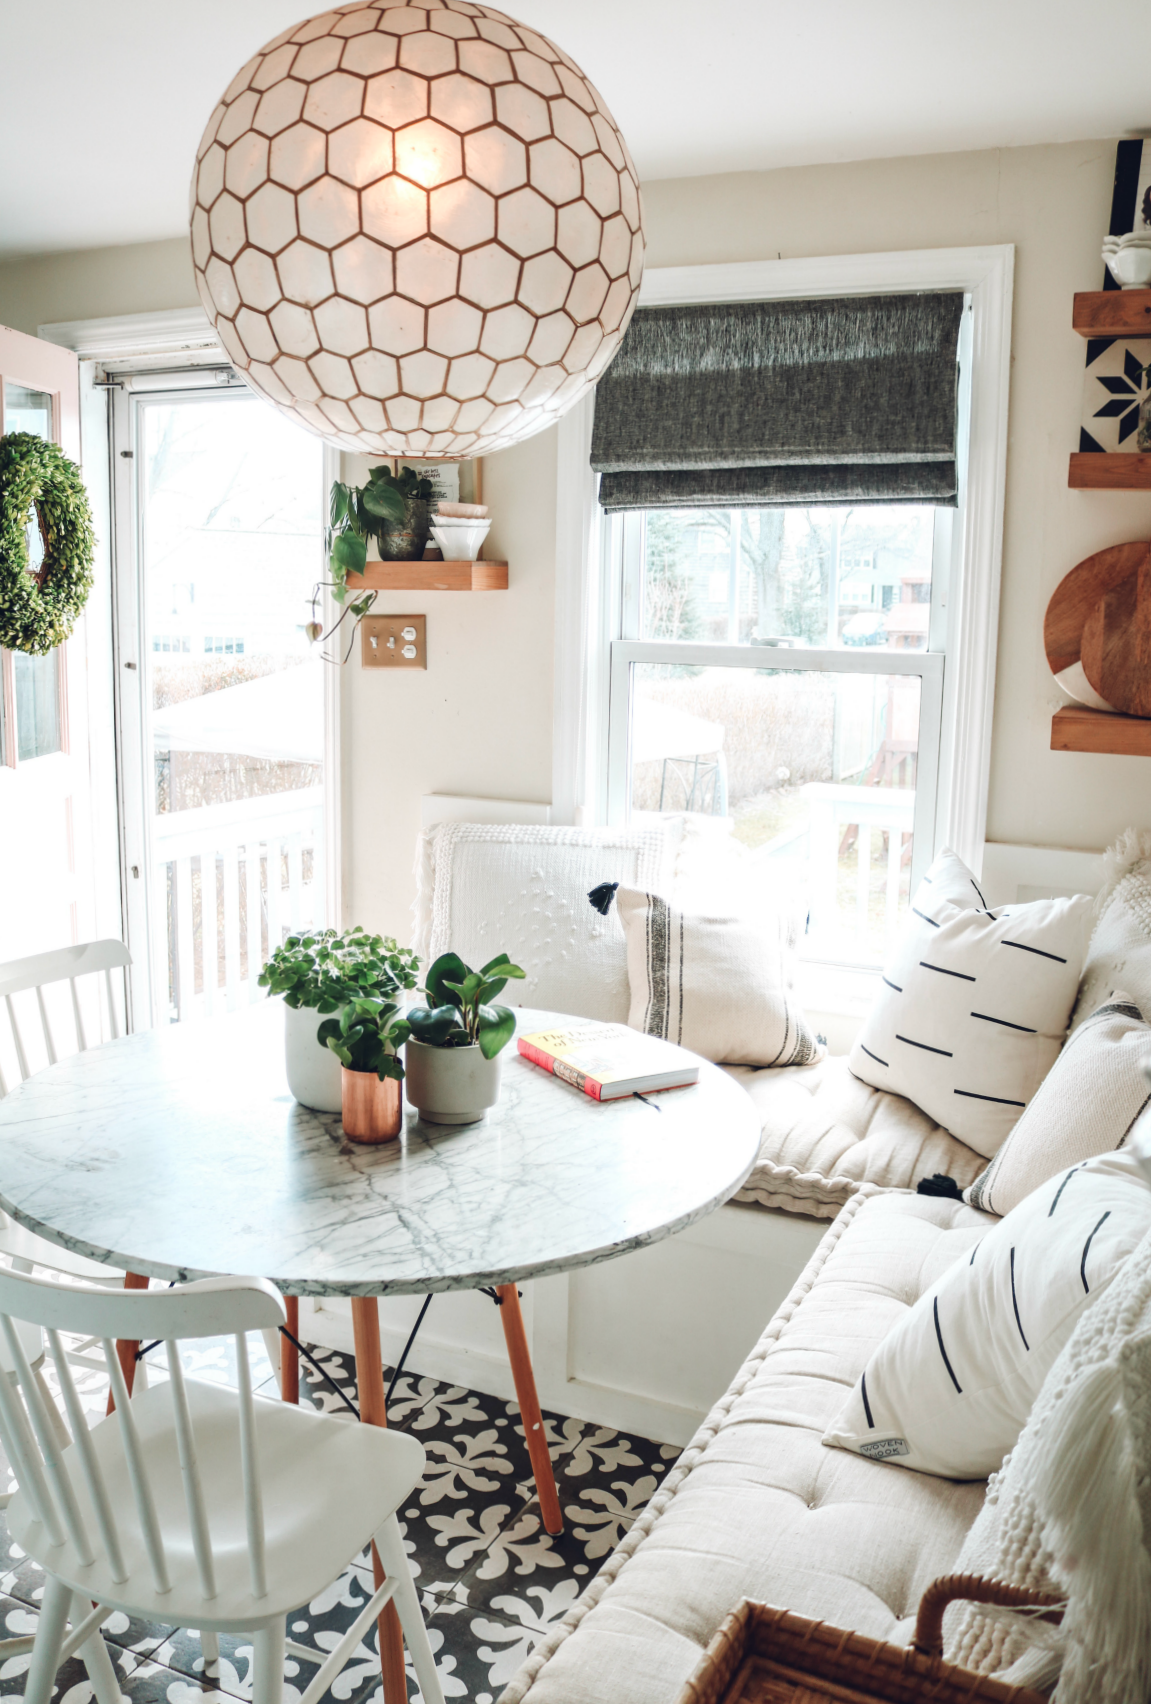 FIVE ways to Use What you Have for Spring!